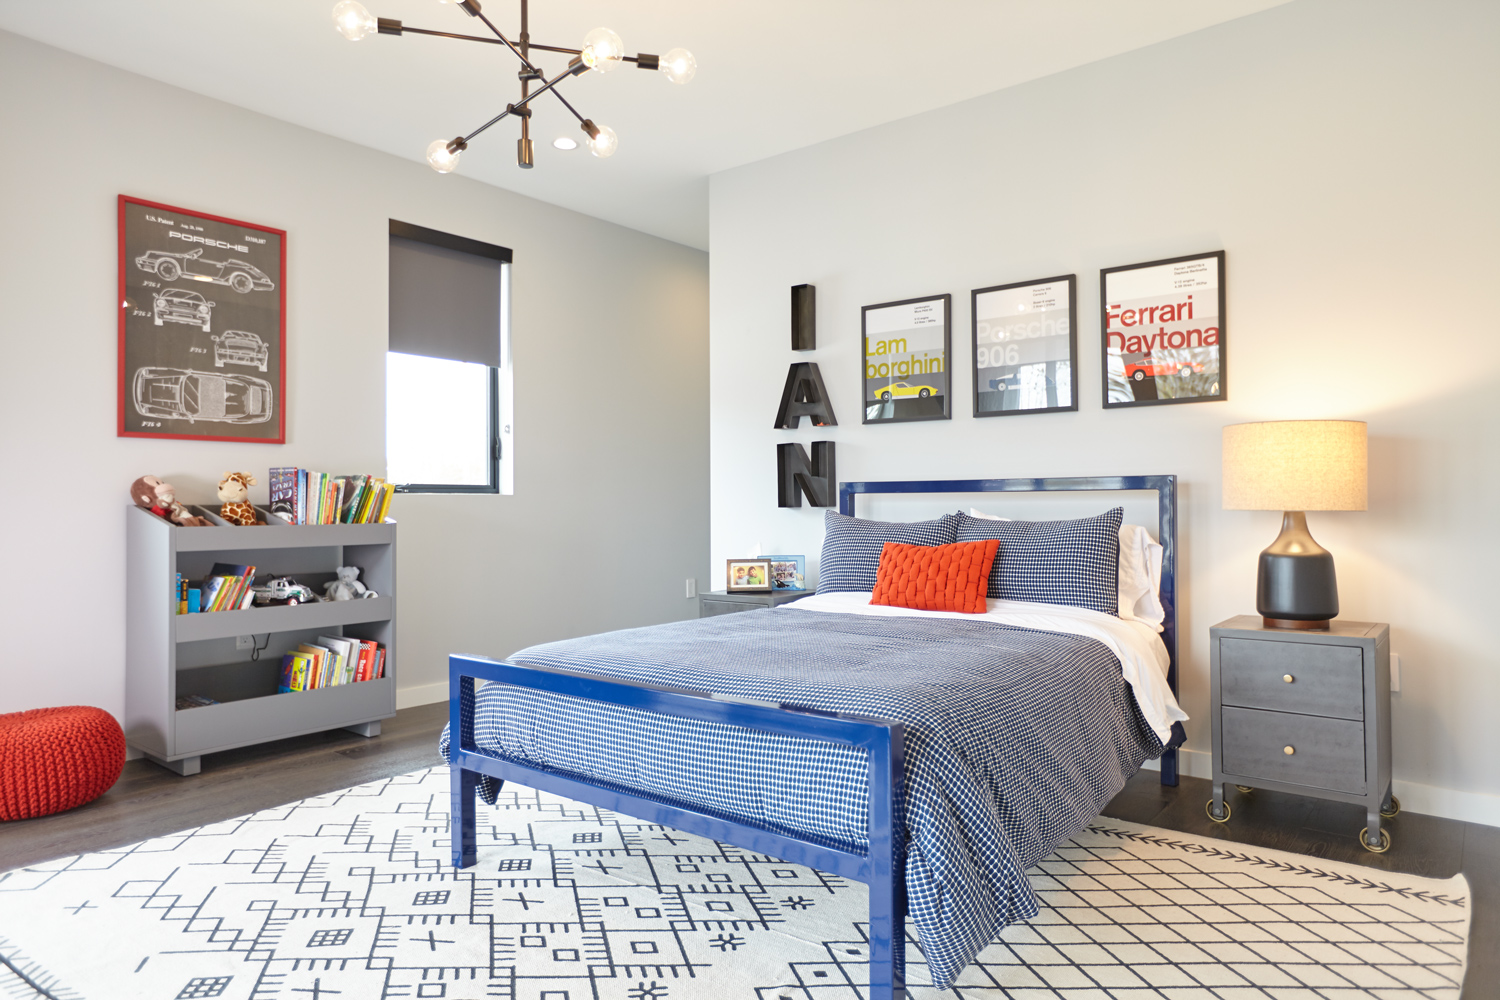 Gray Contemporary Kid's Room With Blue Bed (Image 21 of 35)